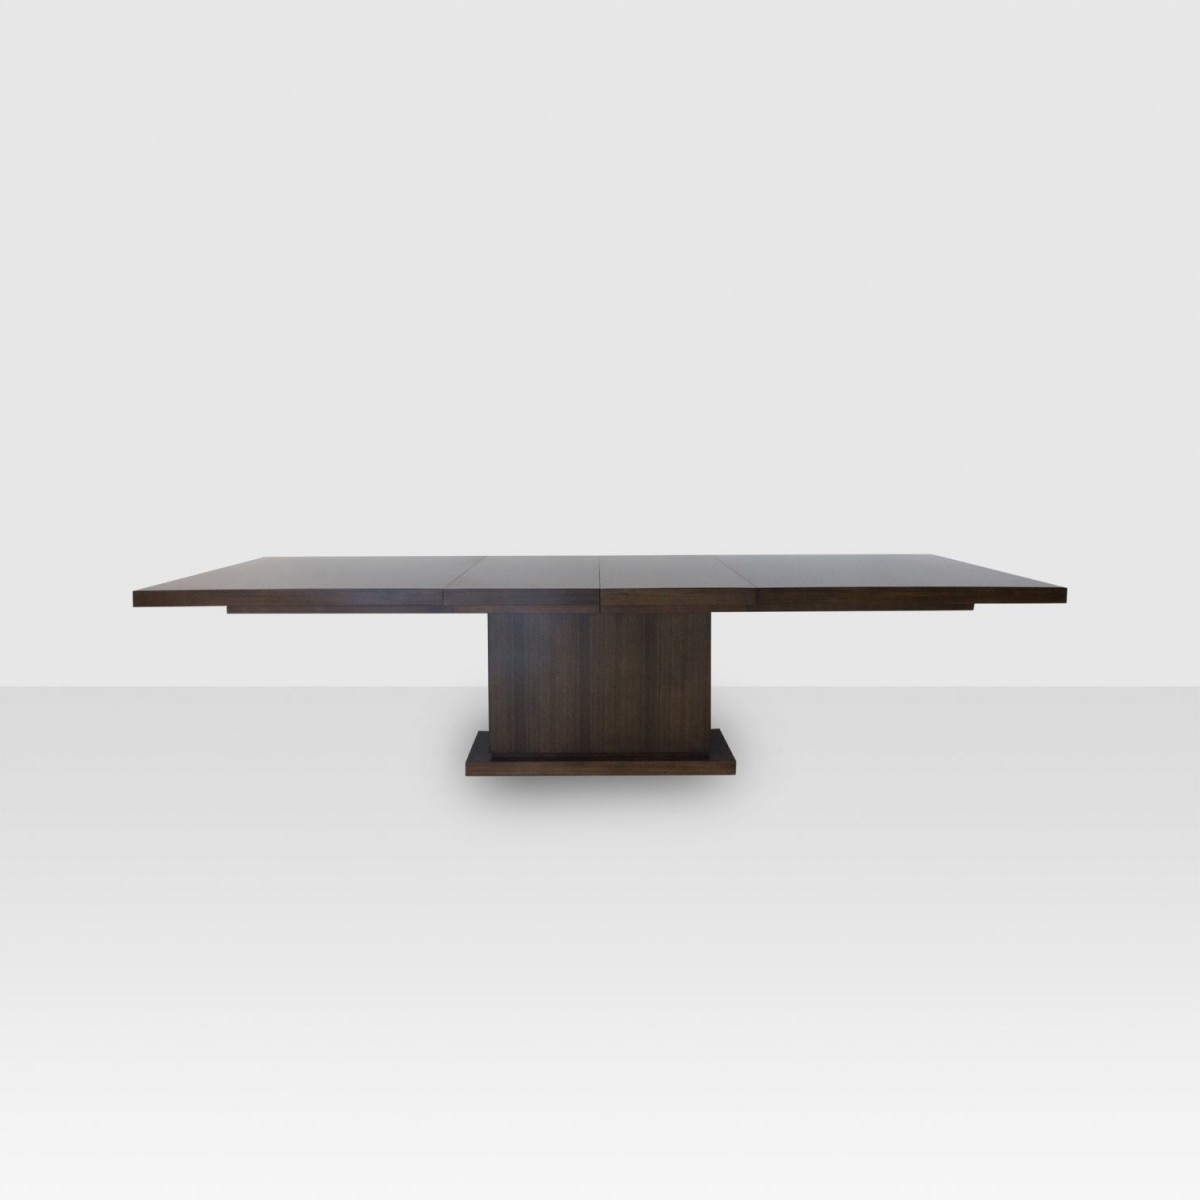 Most Recent Michael Weiss Bradford Dining Table – Elte In Bradford Dining Tables (View 13 of 25)